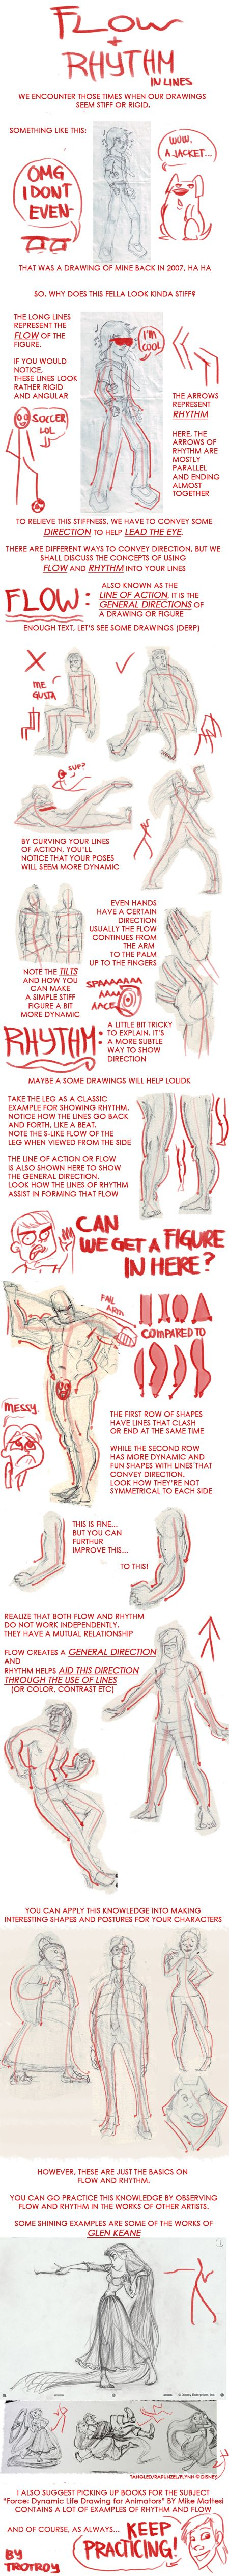 HOW TO MAKE YOUR ART LOOK NICE: Flow and Rhythm by trotroy.deviantart.com on @deviantART